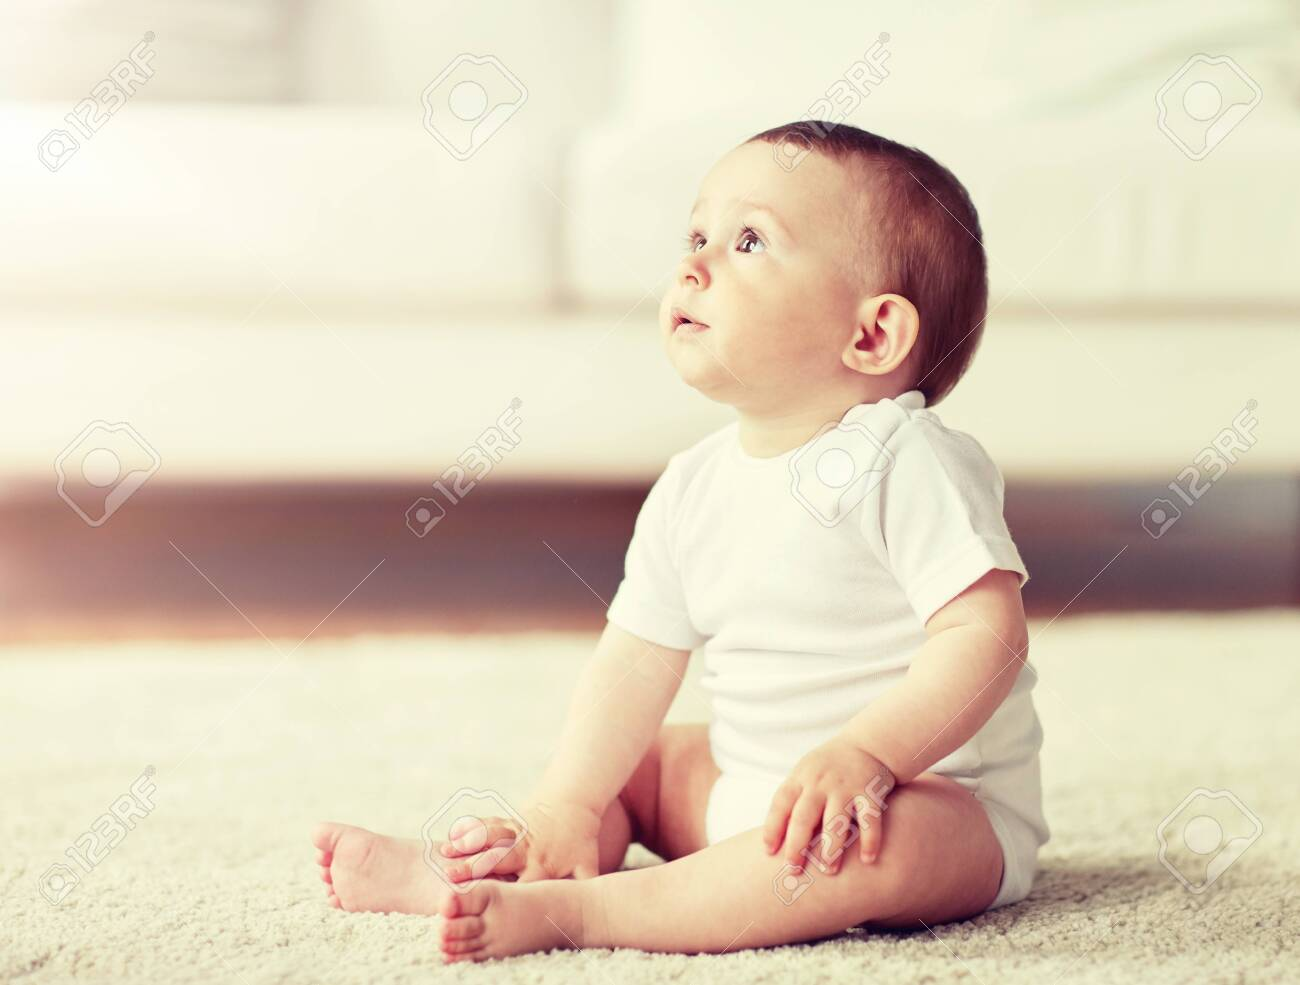 happy baby boy or girl sitting on floor at home - 126742911